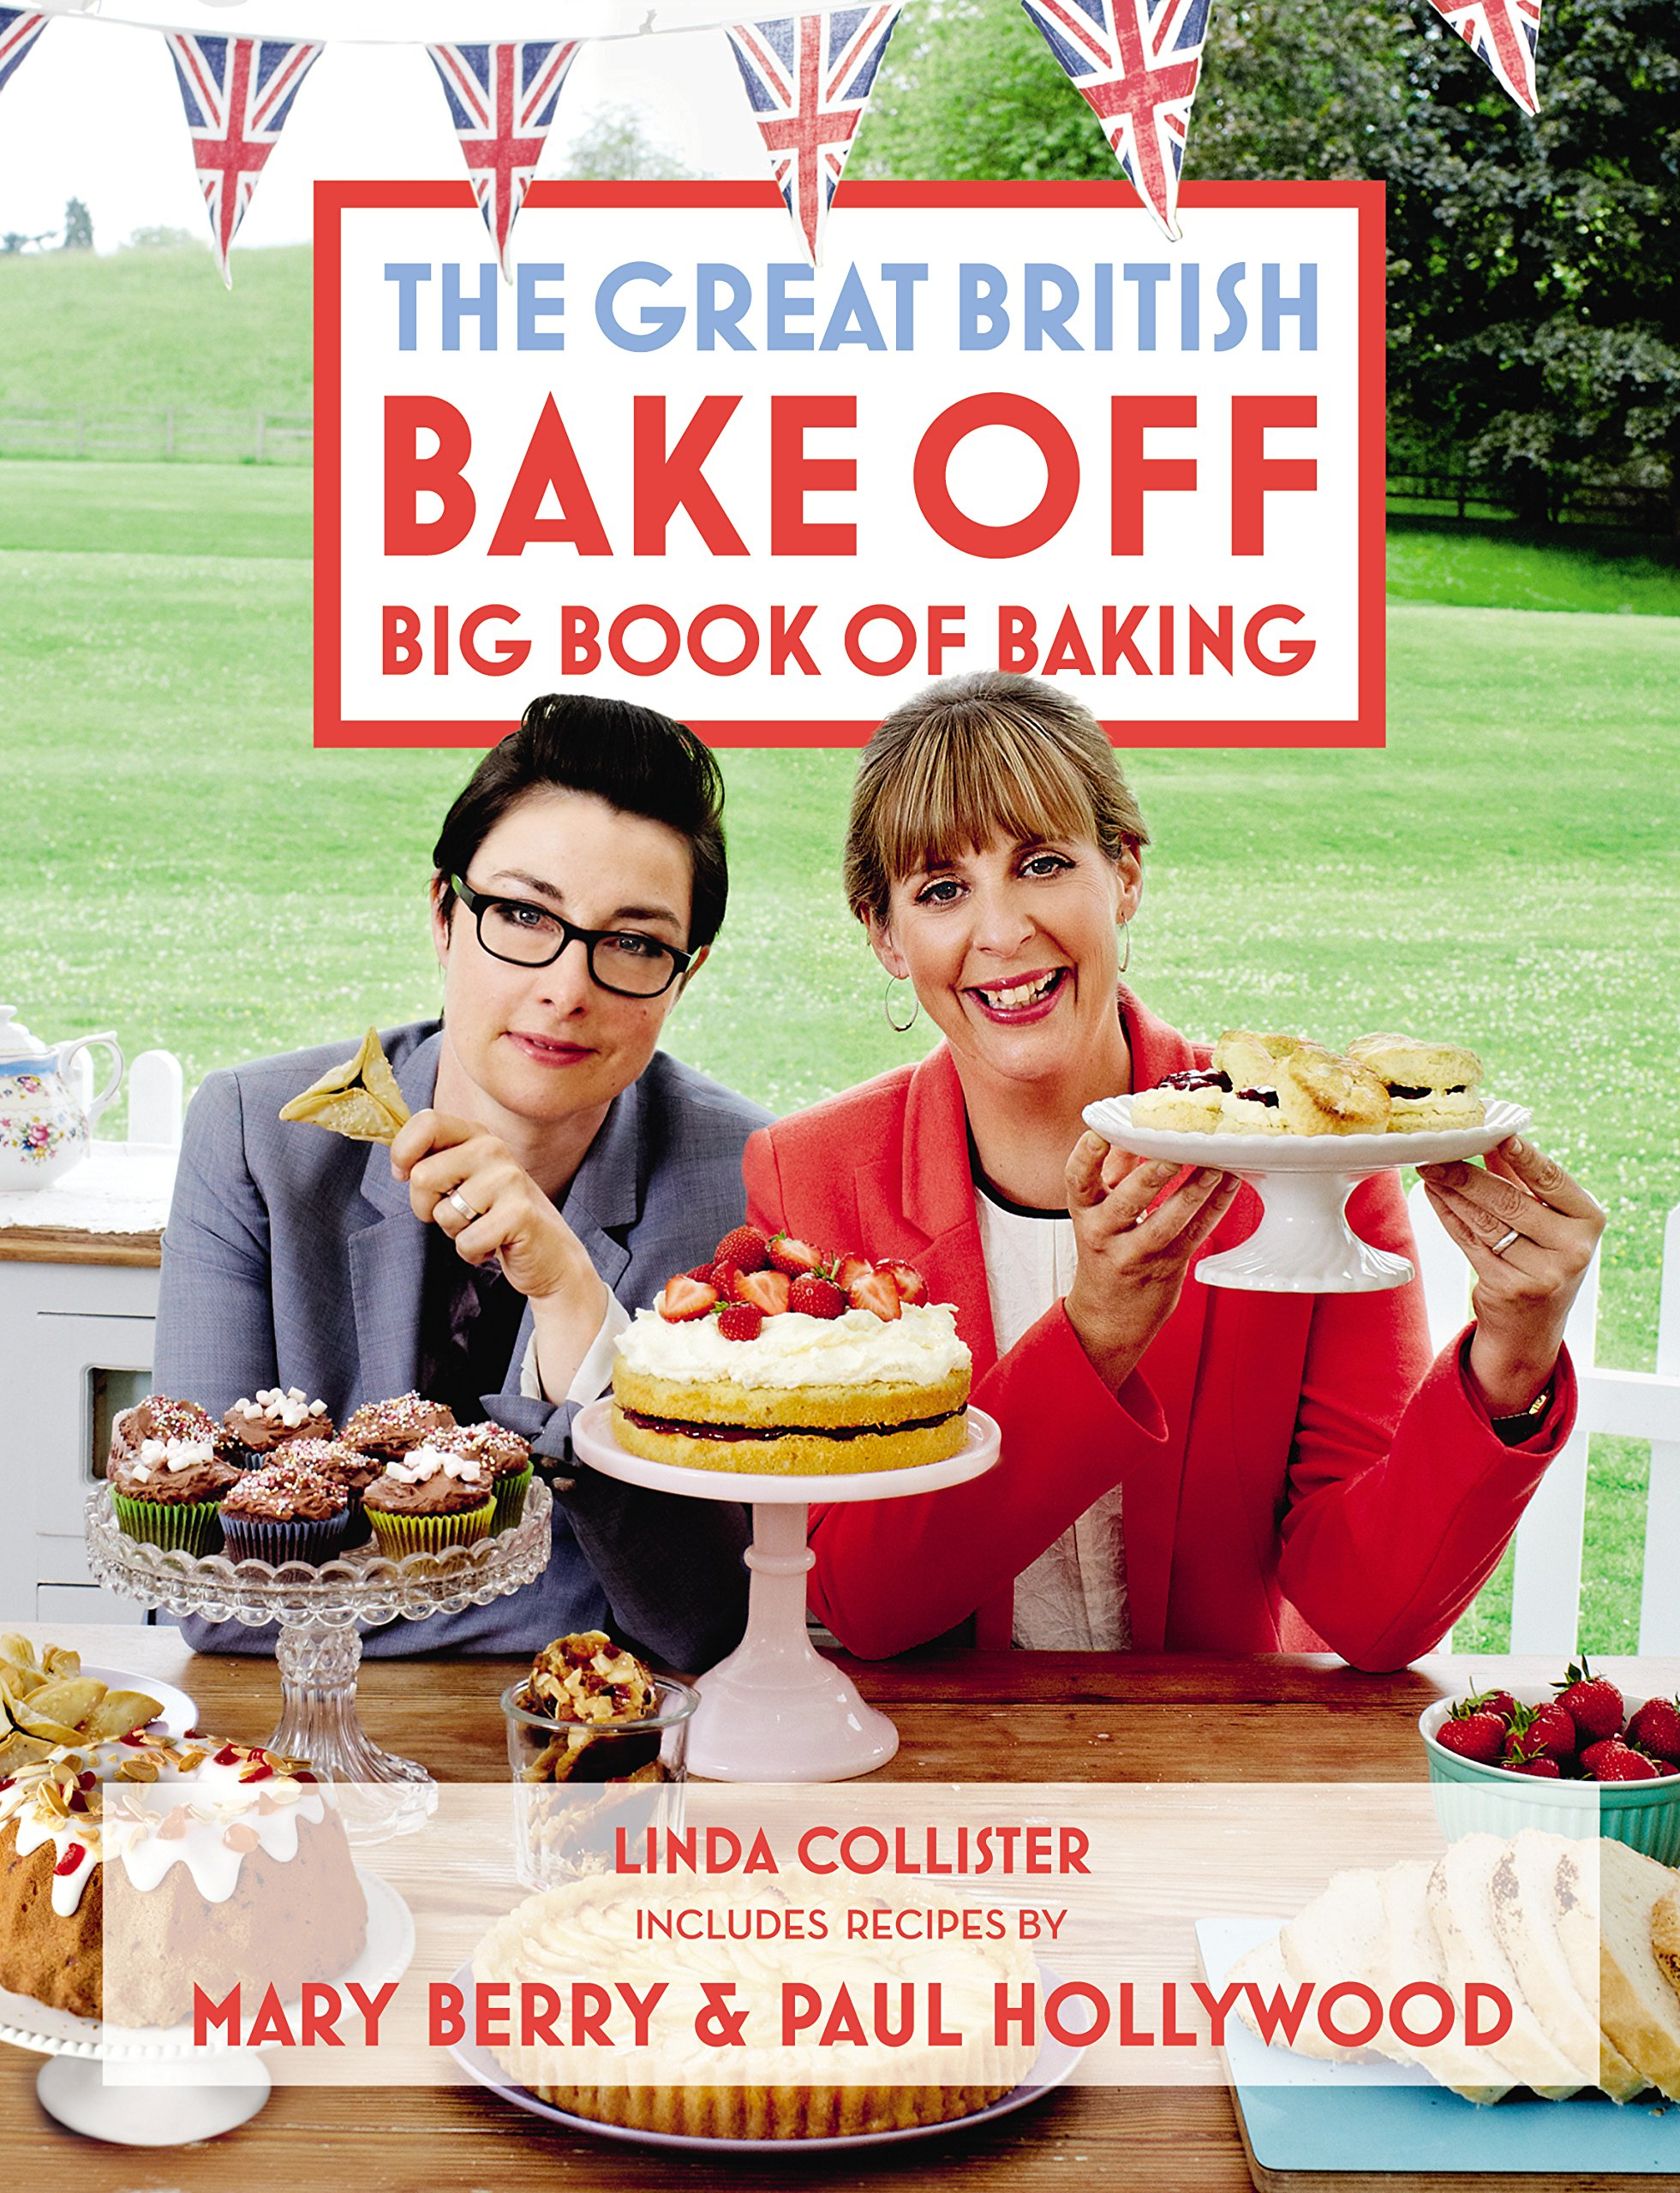 screw_the_average_city_guide_london_4_traditional_food_cookbook_british_bake_off.jpg